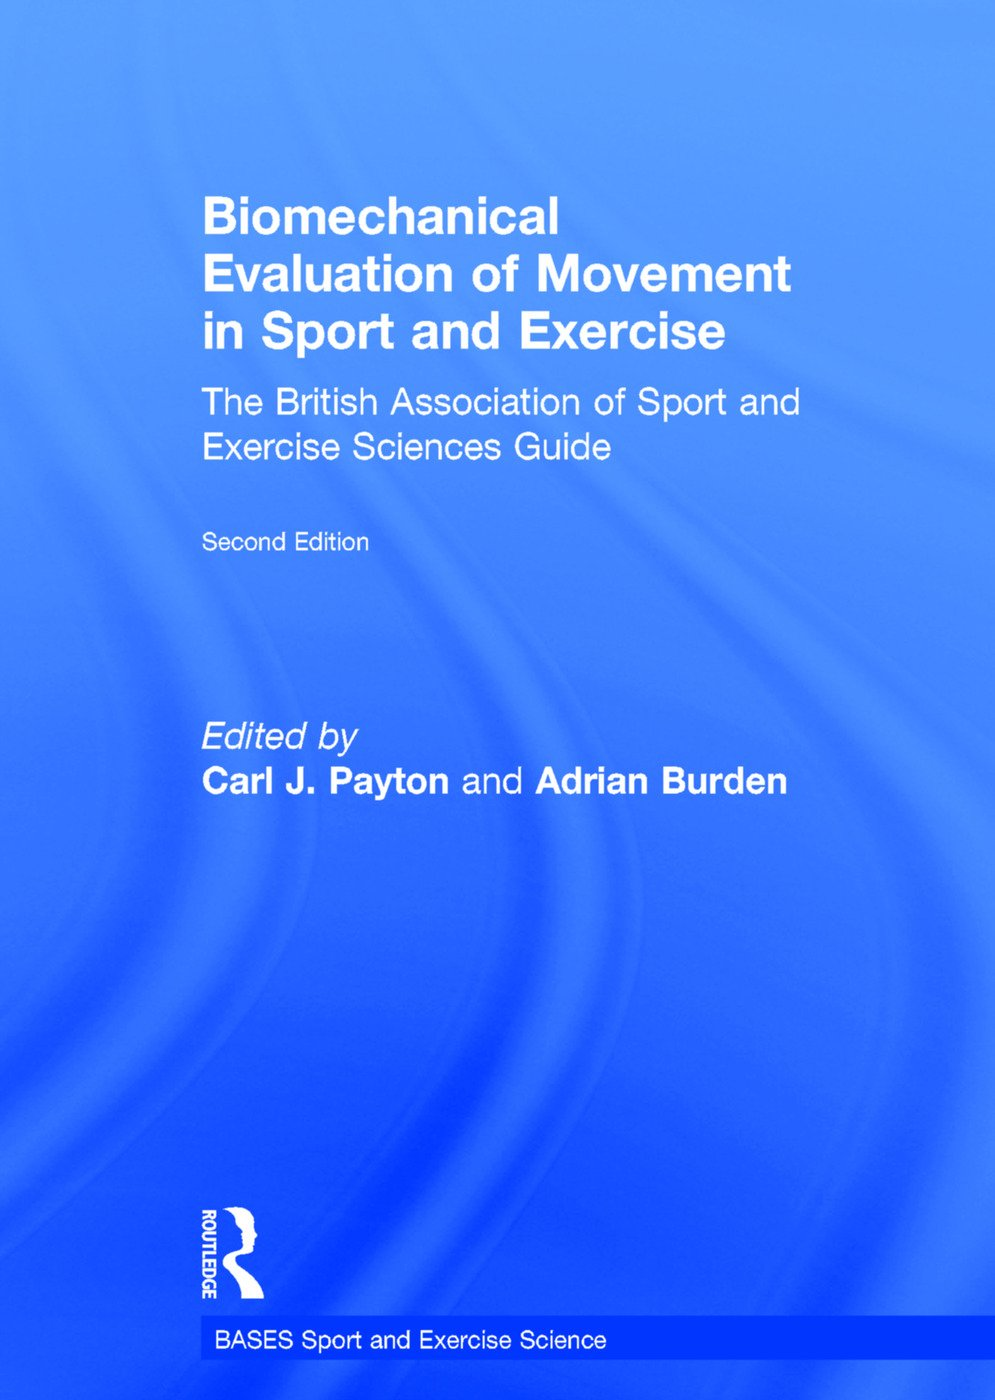 Biomechanical Evaluation of Movement in Sport and Exercise: The British Association of Sport and Exercise Sciences Guide book cover